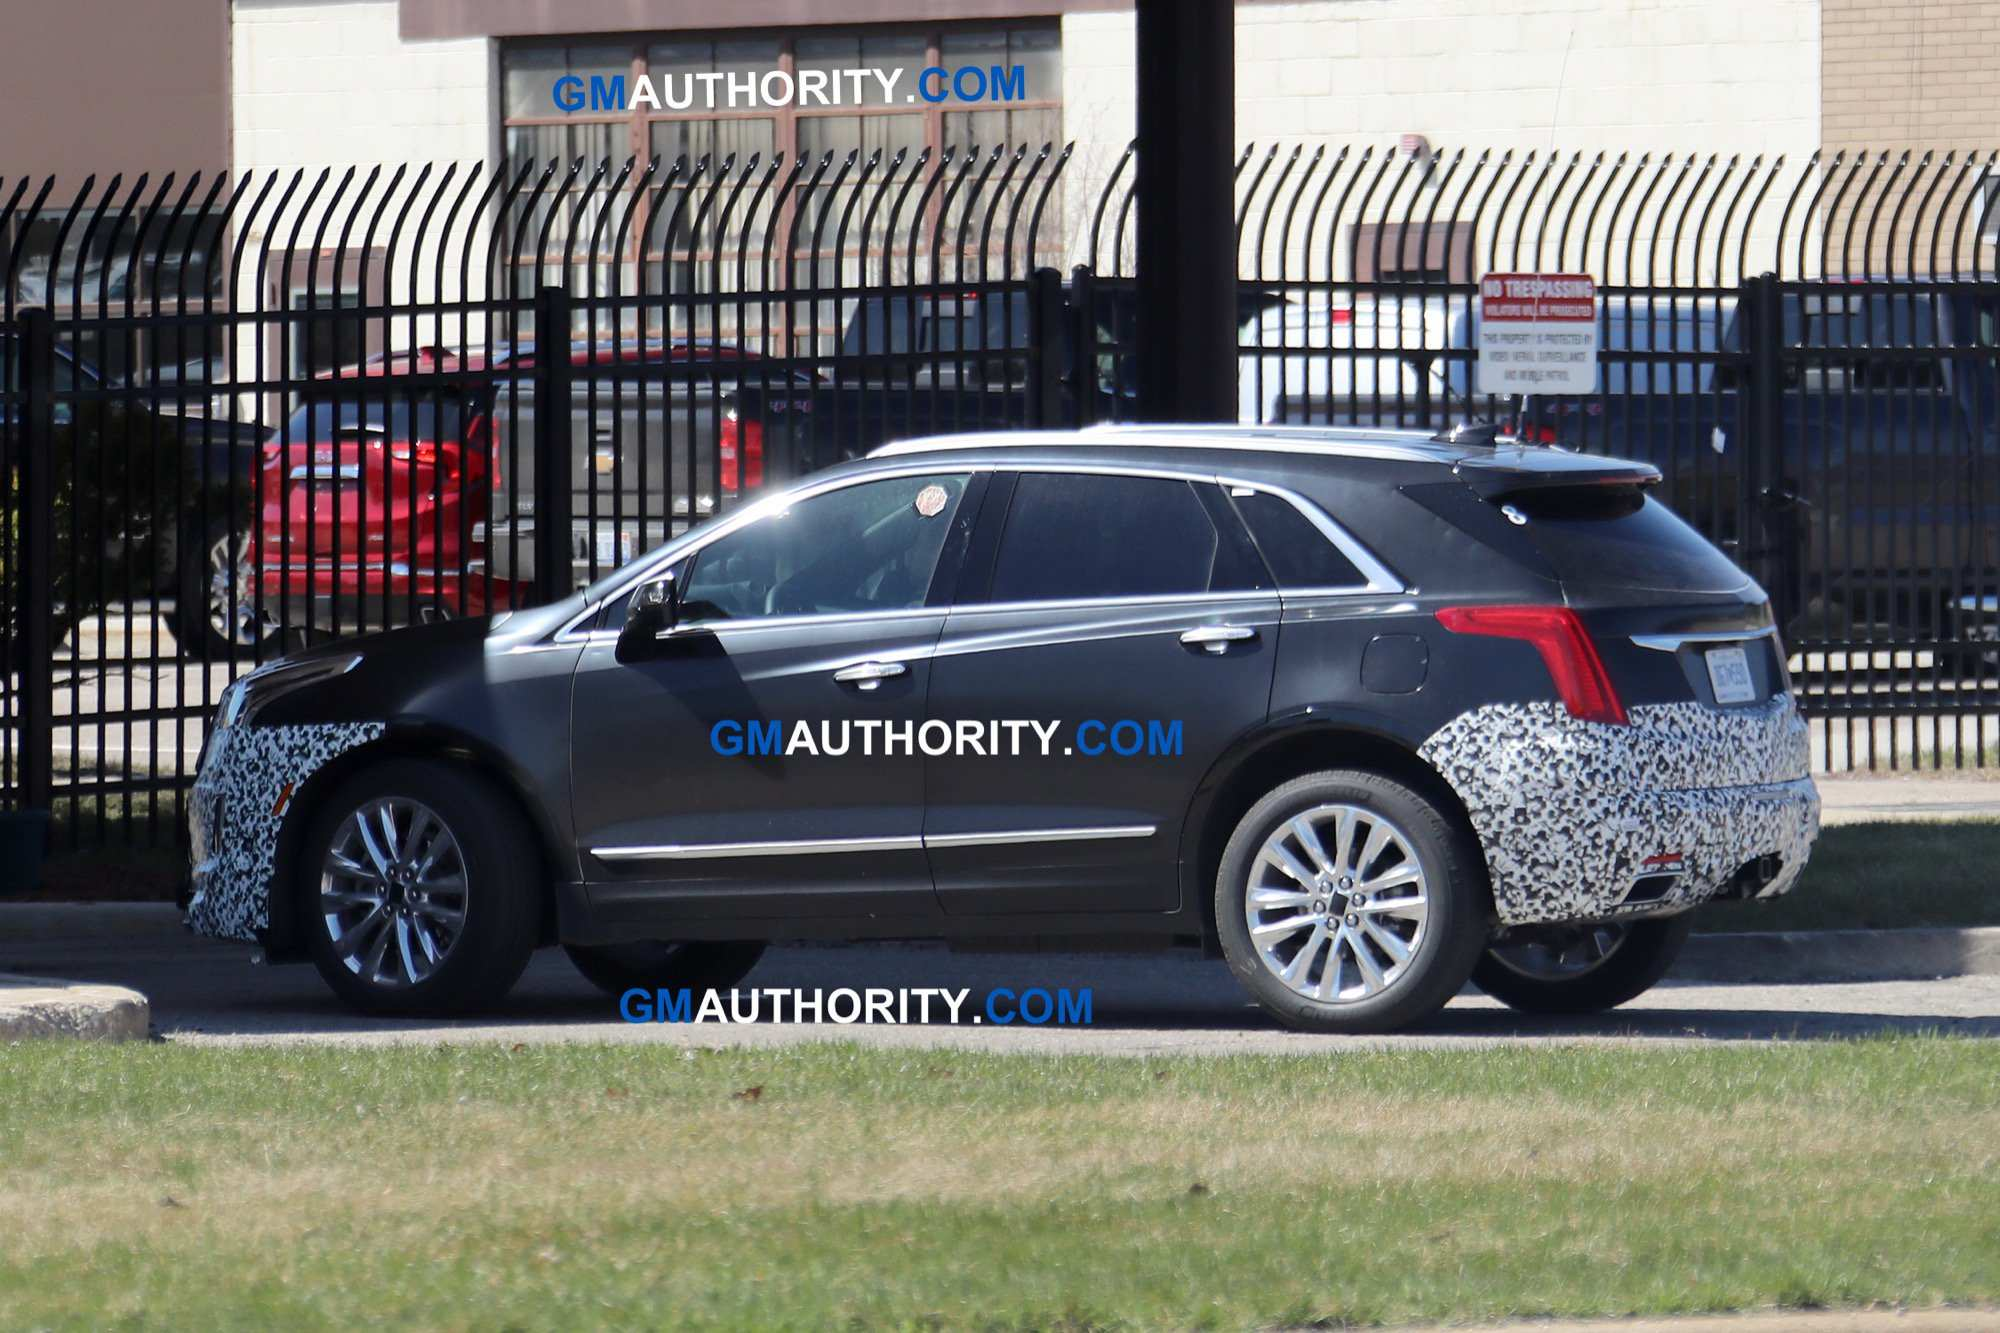 92 The 2020 Spy Shots Cadillac Xt5 Release Date